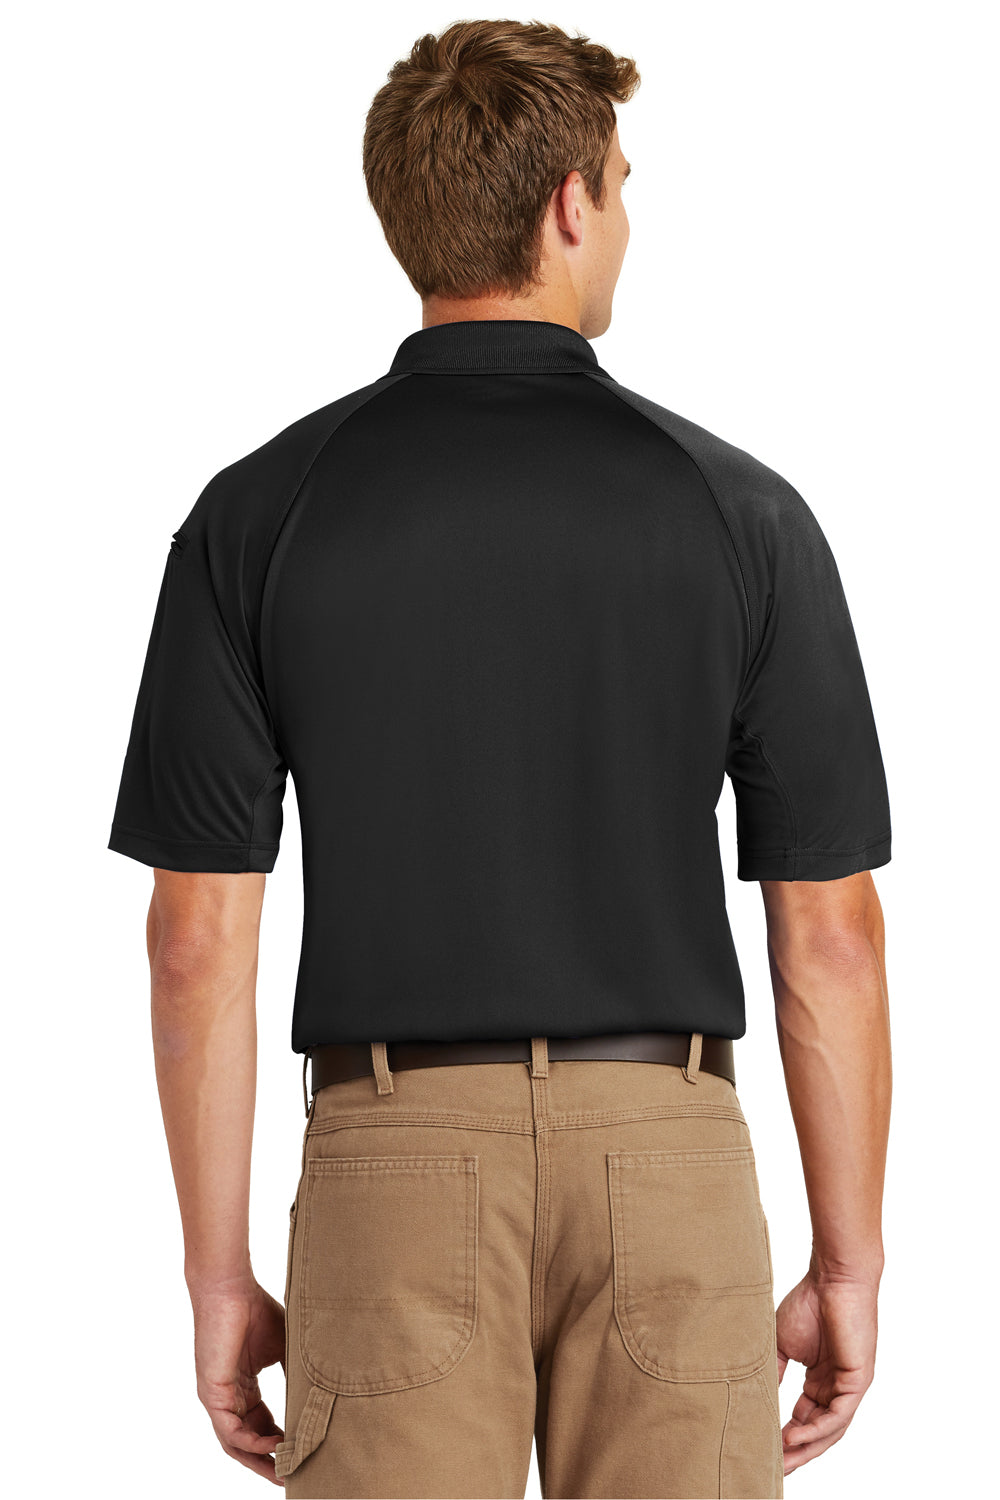 CornerStone CS410 Mens Select Tactical Moisture Wicking Short Sleeve Polo Shirt Black Back